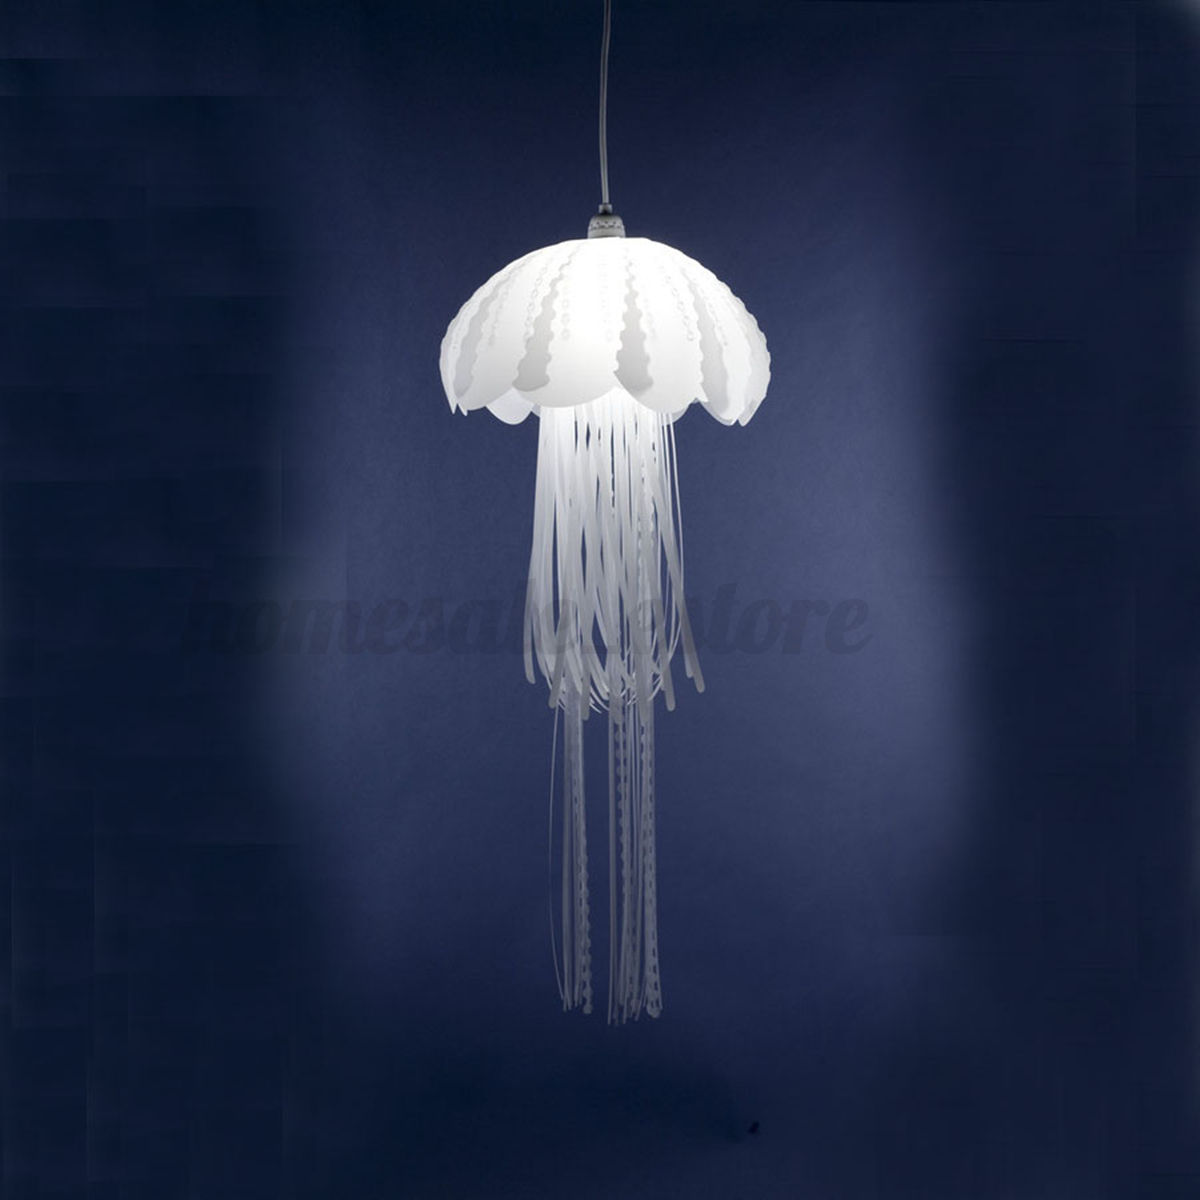 Glow ethereal jellyfish lampshade ceiling chandelier light pendant hanging lamp ebay - Chandelier ceiling lamp ...